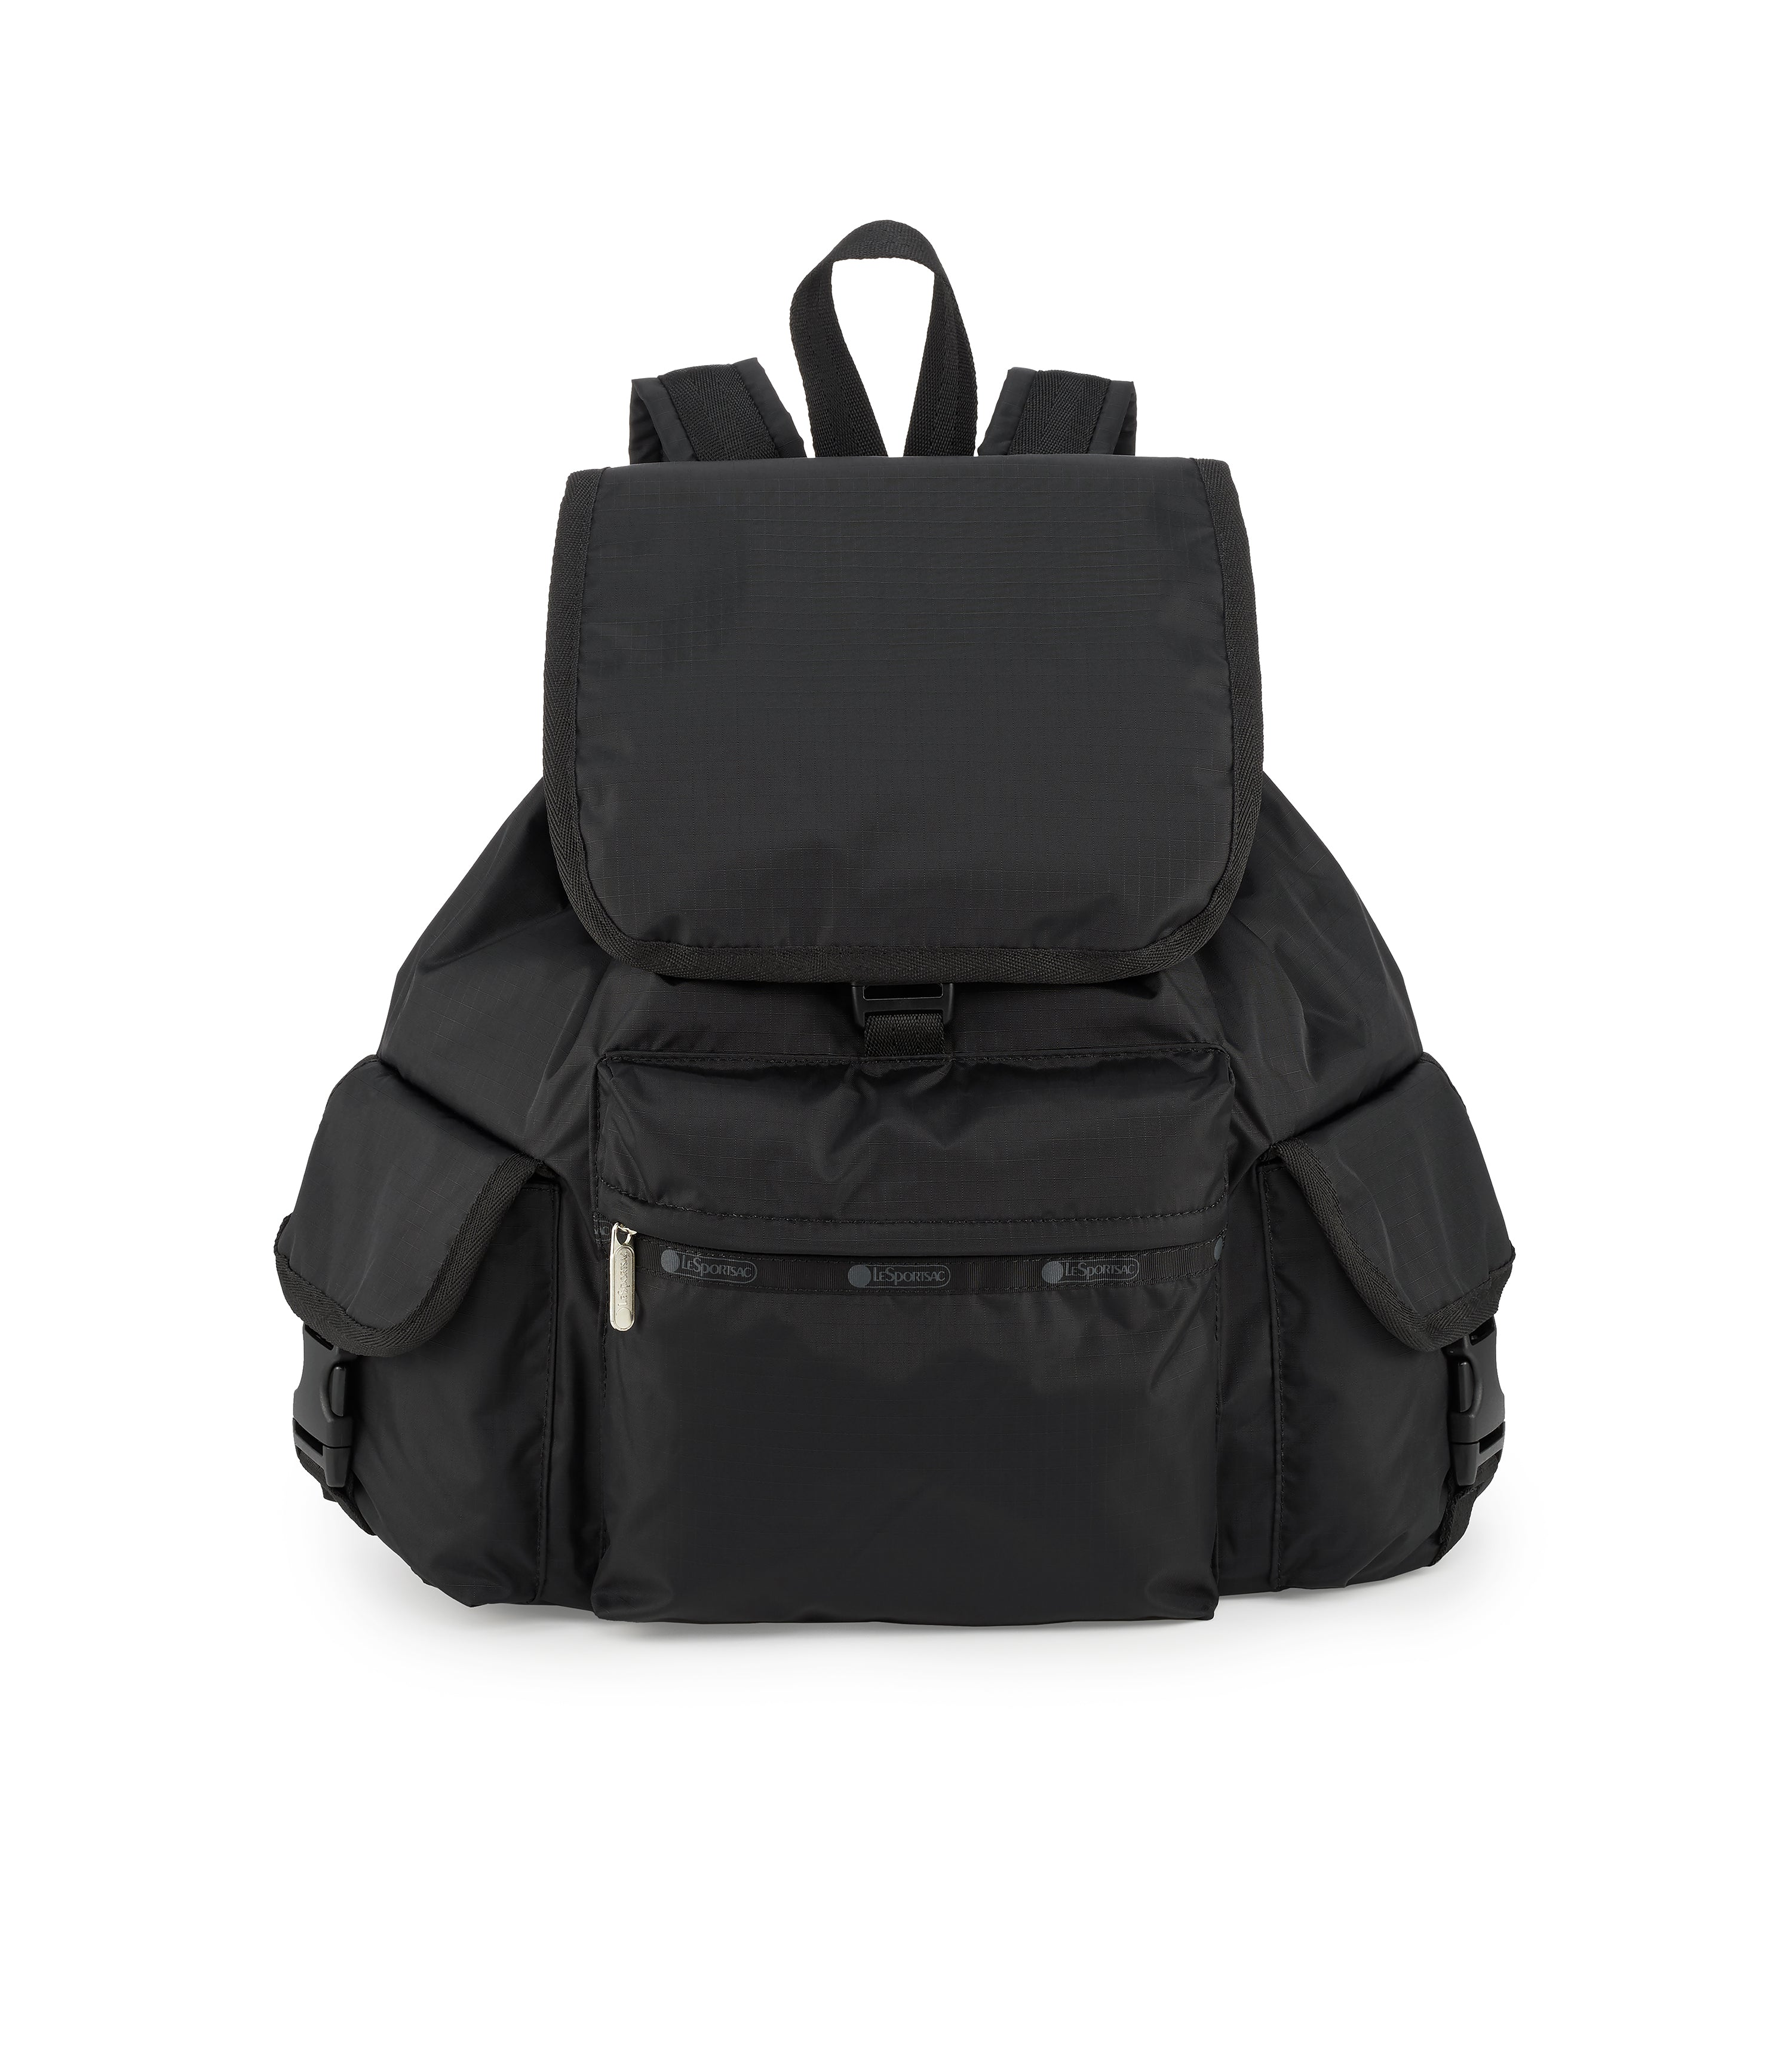 9be9d5028 Voyager Backpack   LeSportsac